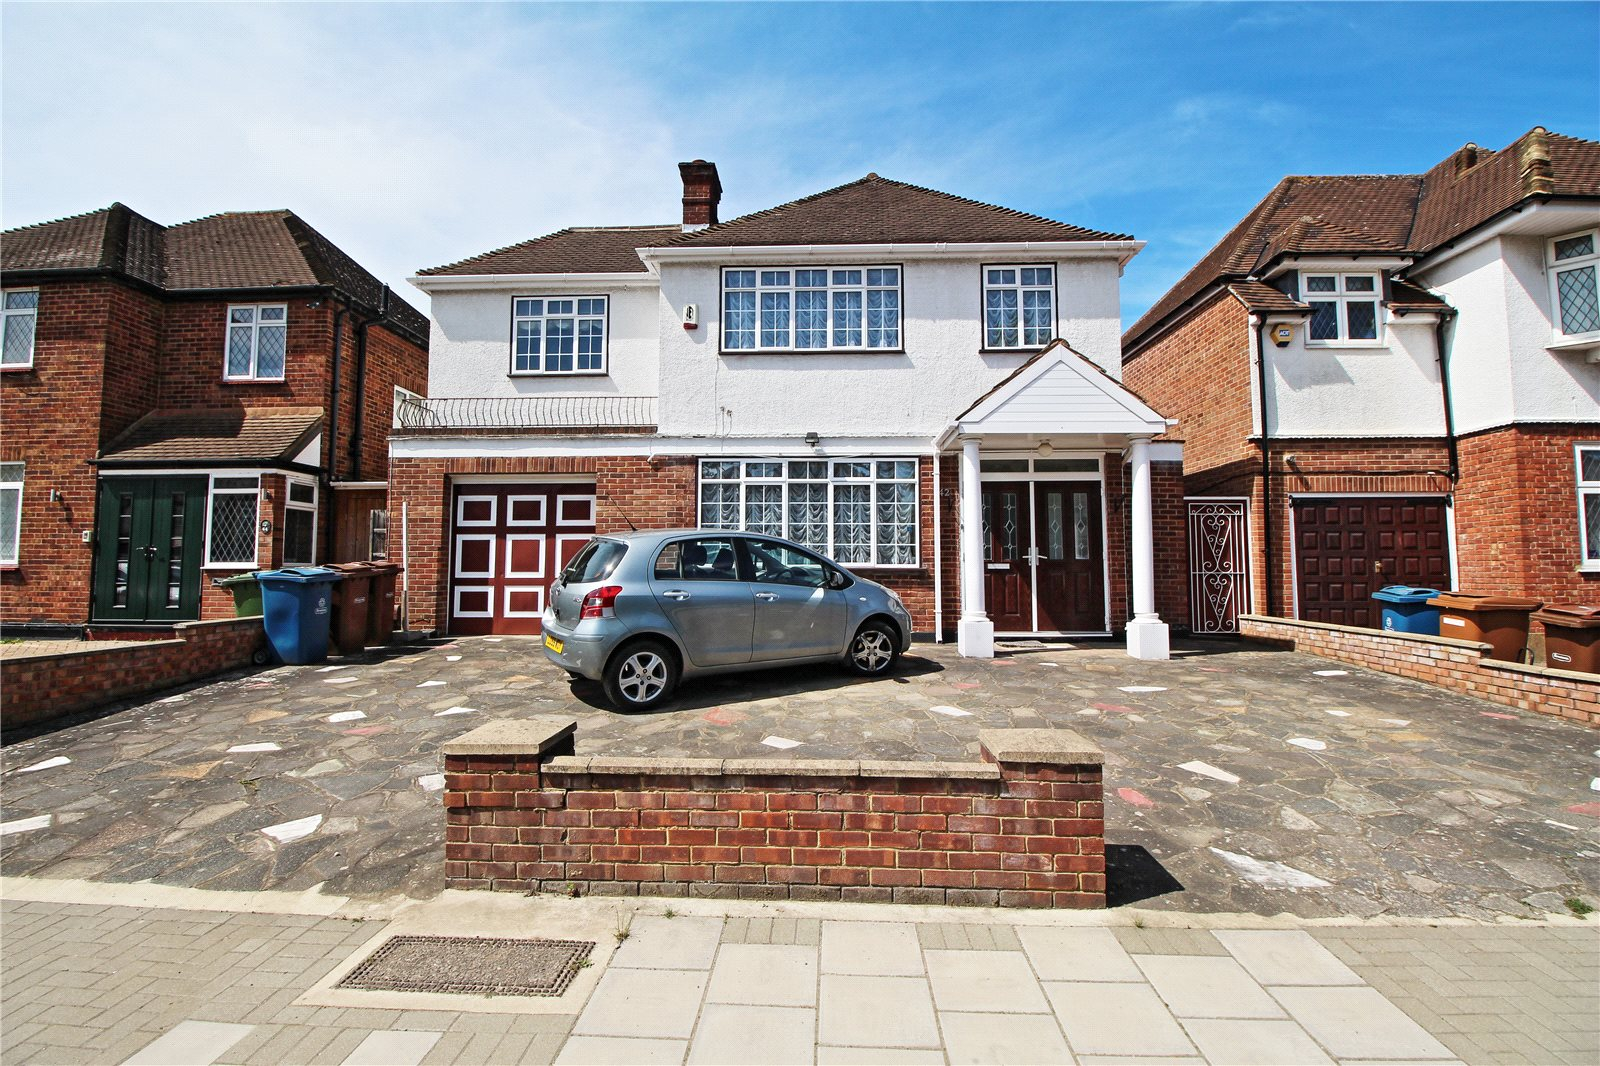 4 Bedrooms Detached House for sale in Dalkeith Grove Stanmore Greater London HA7